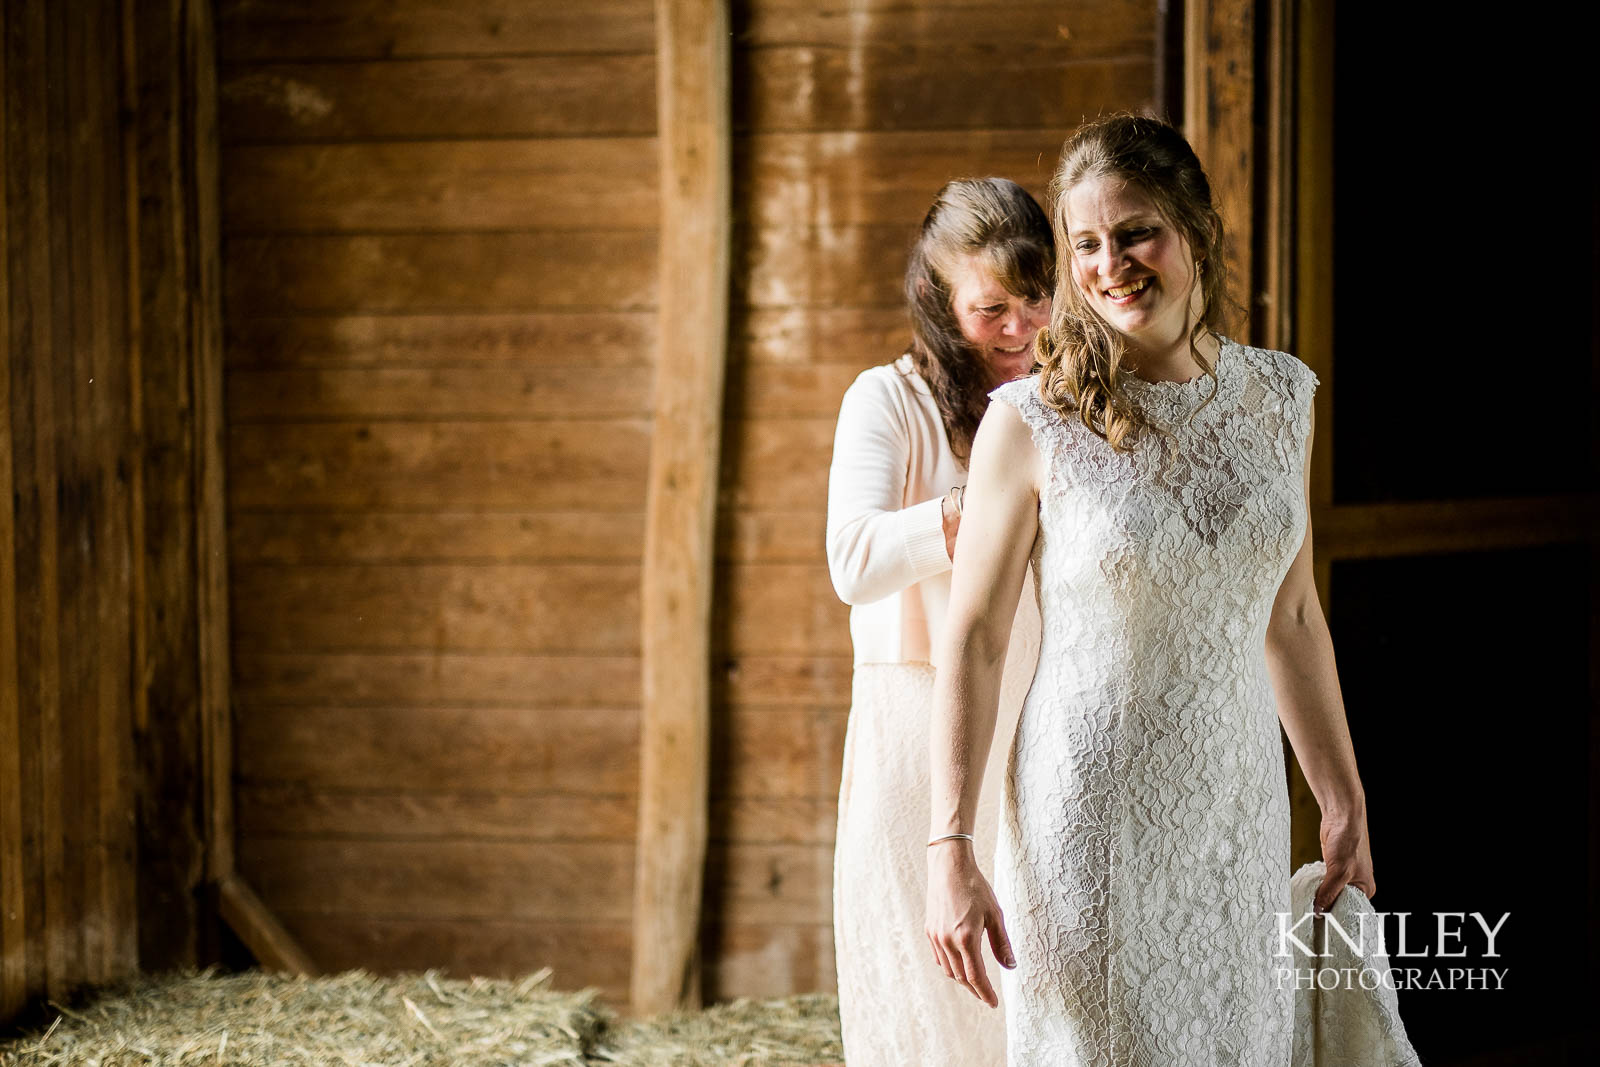 07-Western-New-York-farm-wedding-Kniley-Photography.jpg